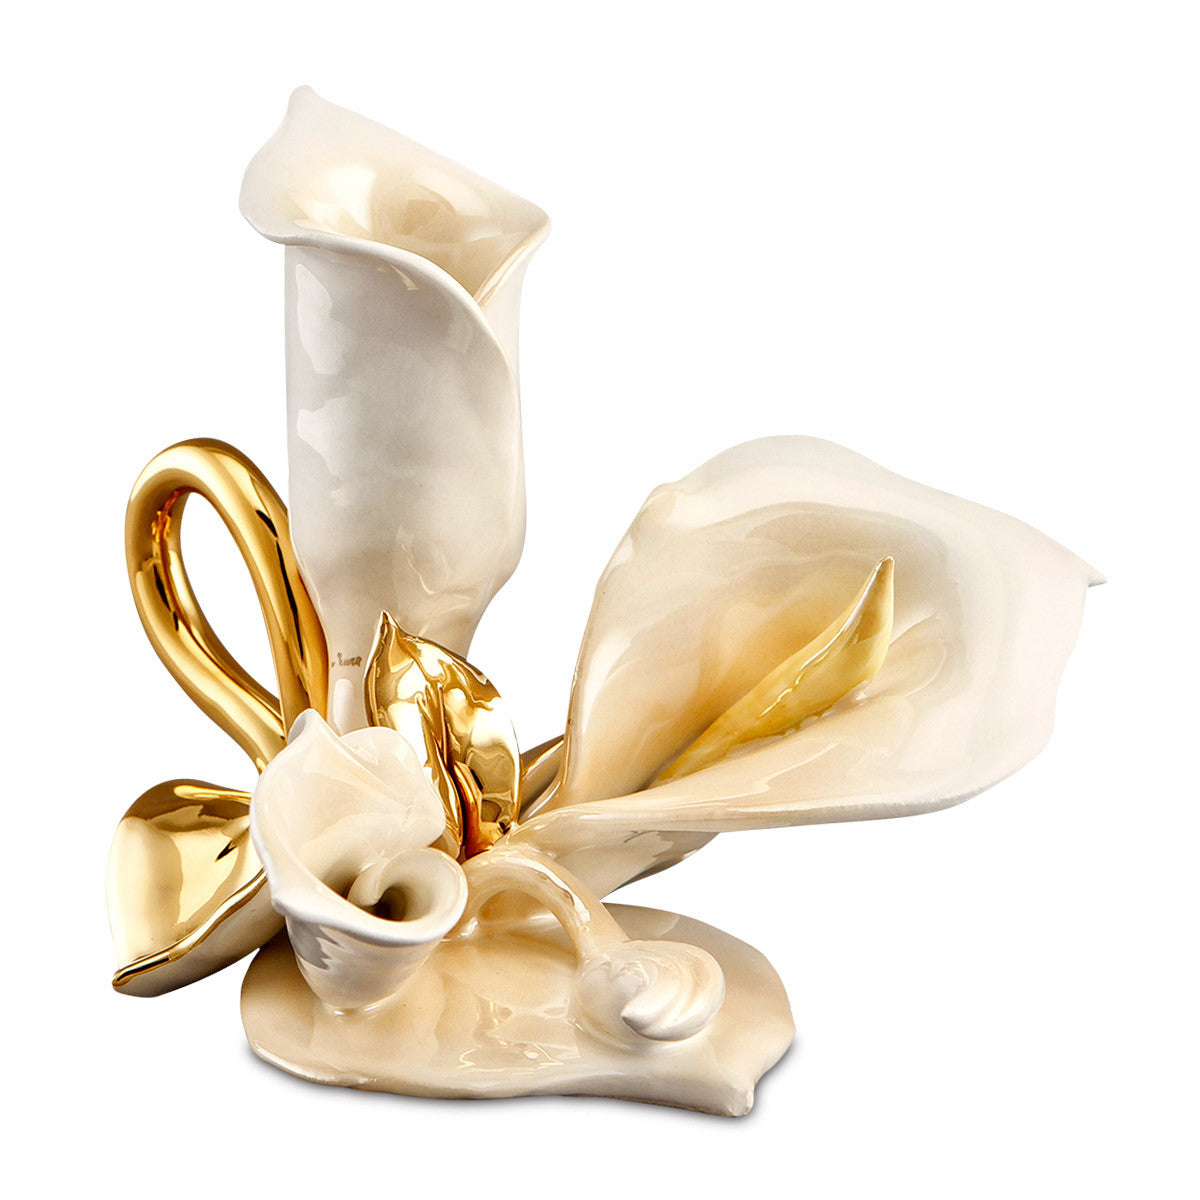 callas candle holder ceramic porcelain finish wit luster and gold